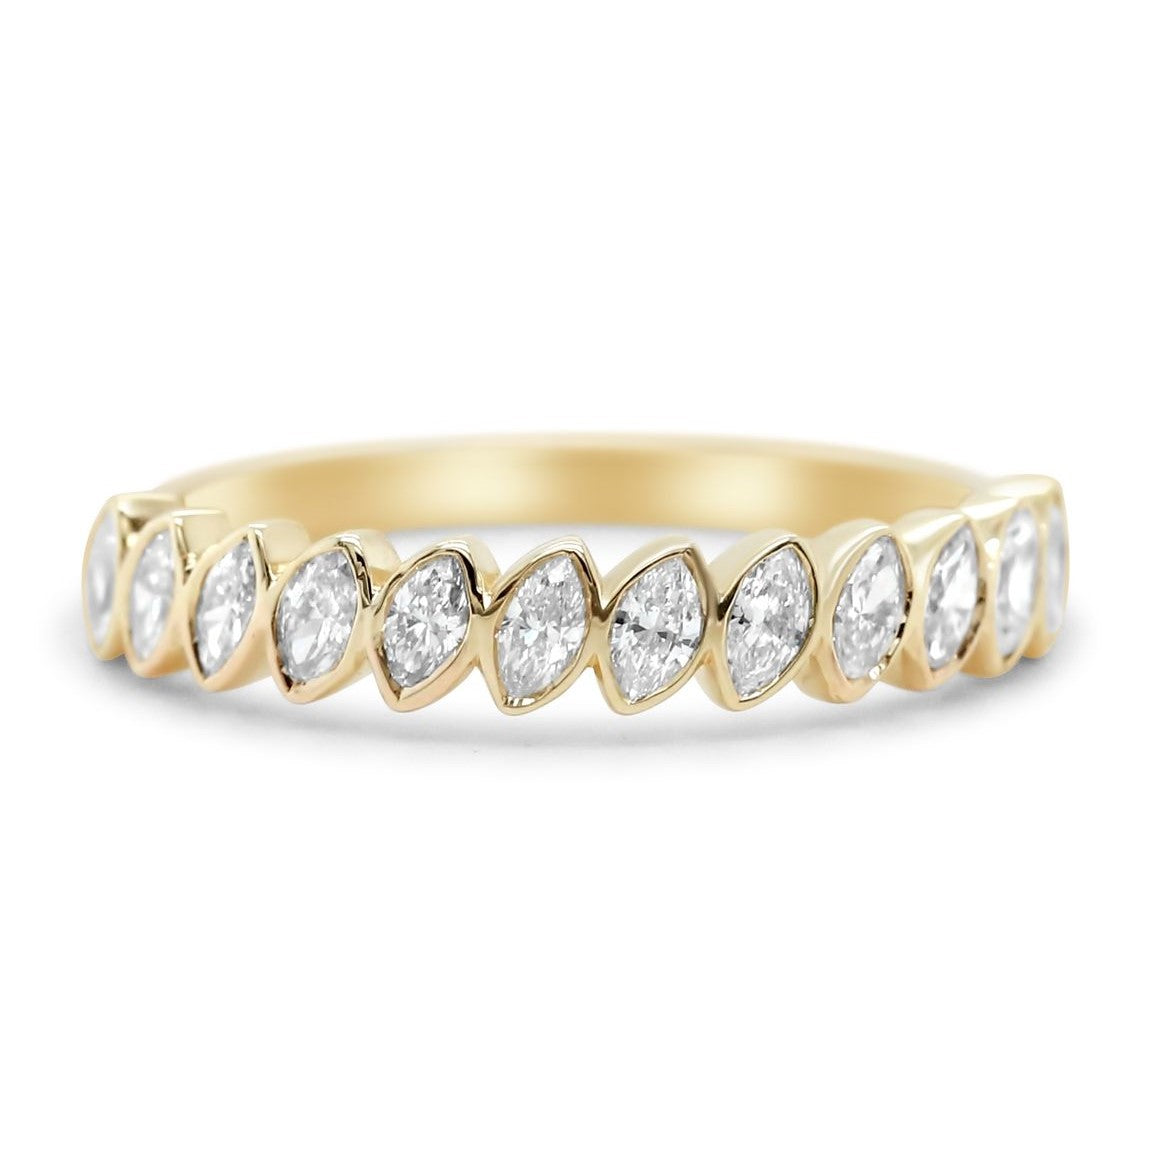 14k yellow, white or rose gold slanted marquise bezel set diamond wedding band